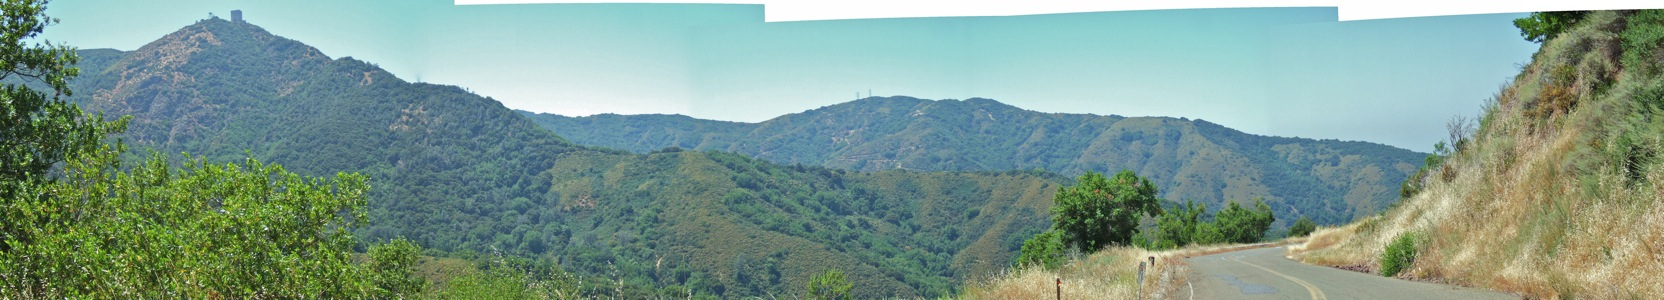 Mt Umunhum and El Sombroso - 7/2010